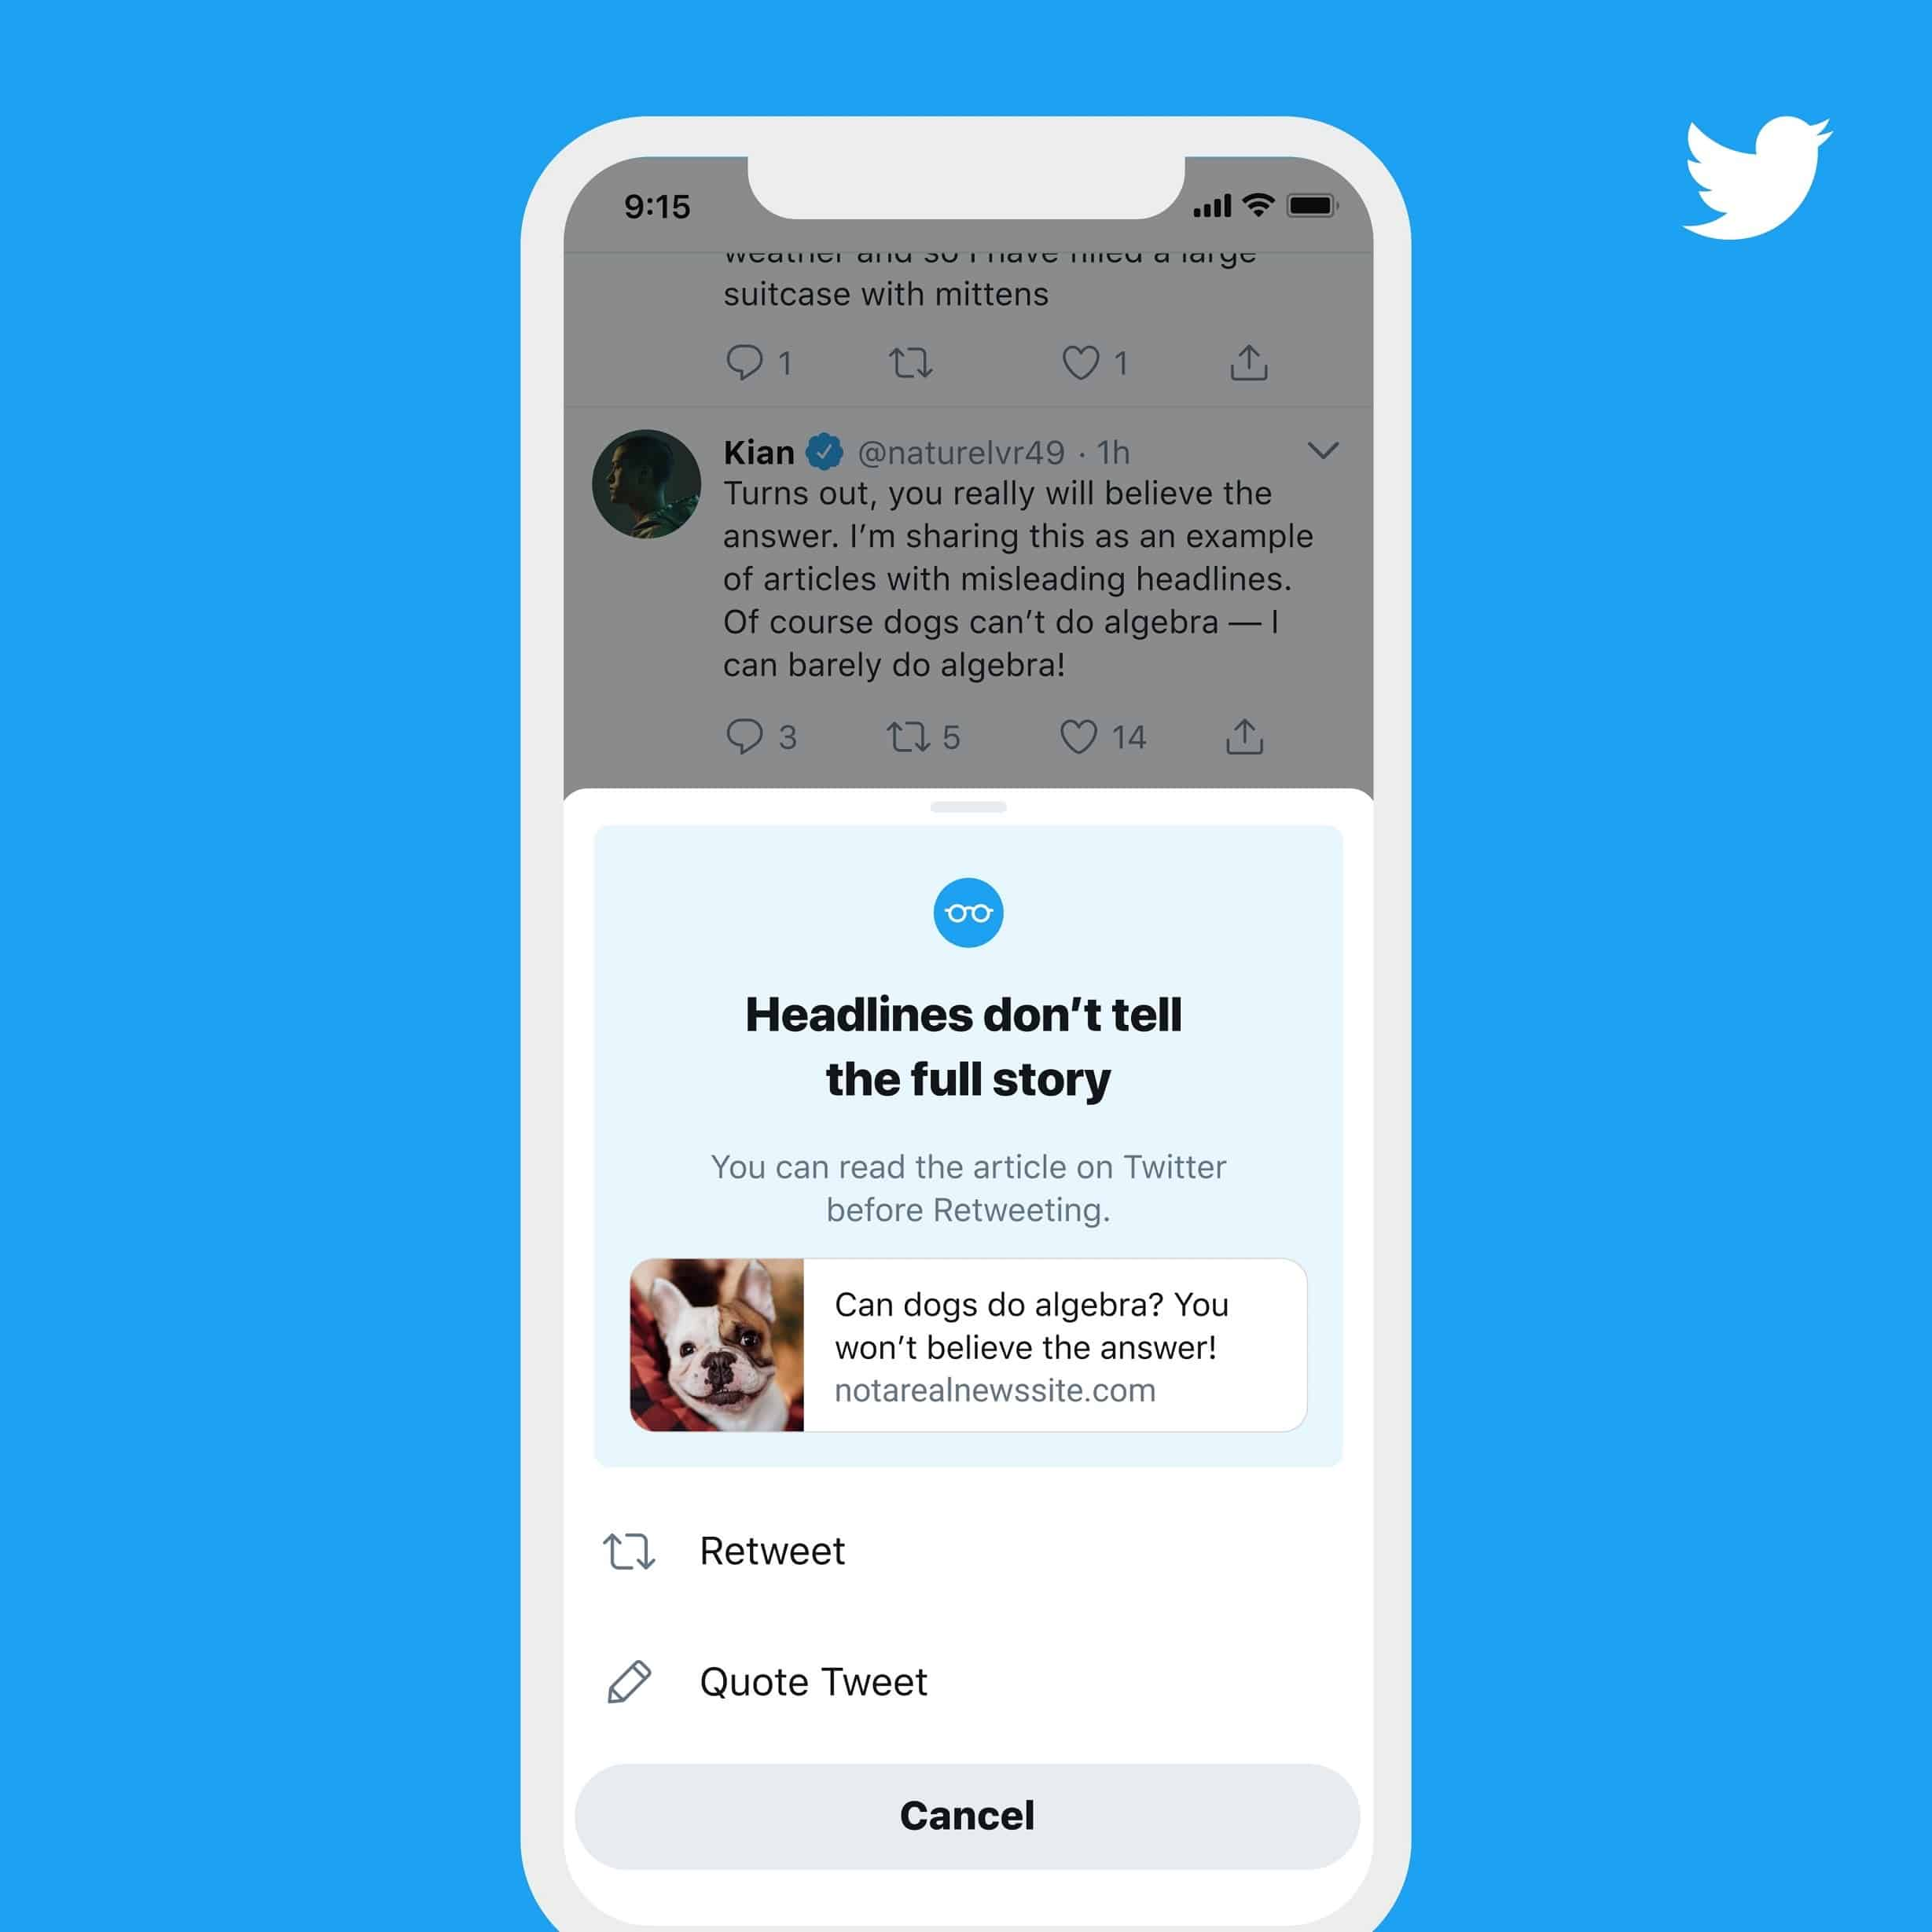 Twitter read article prompt misinformation